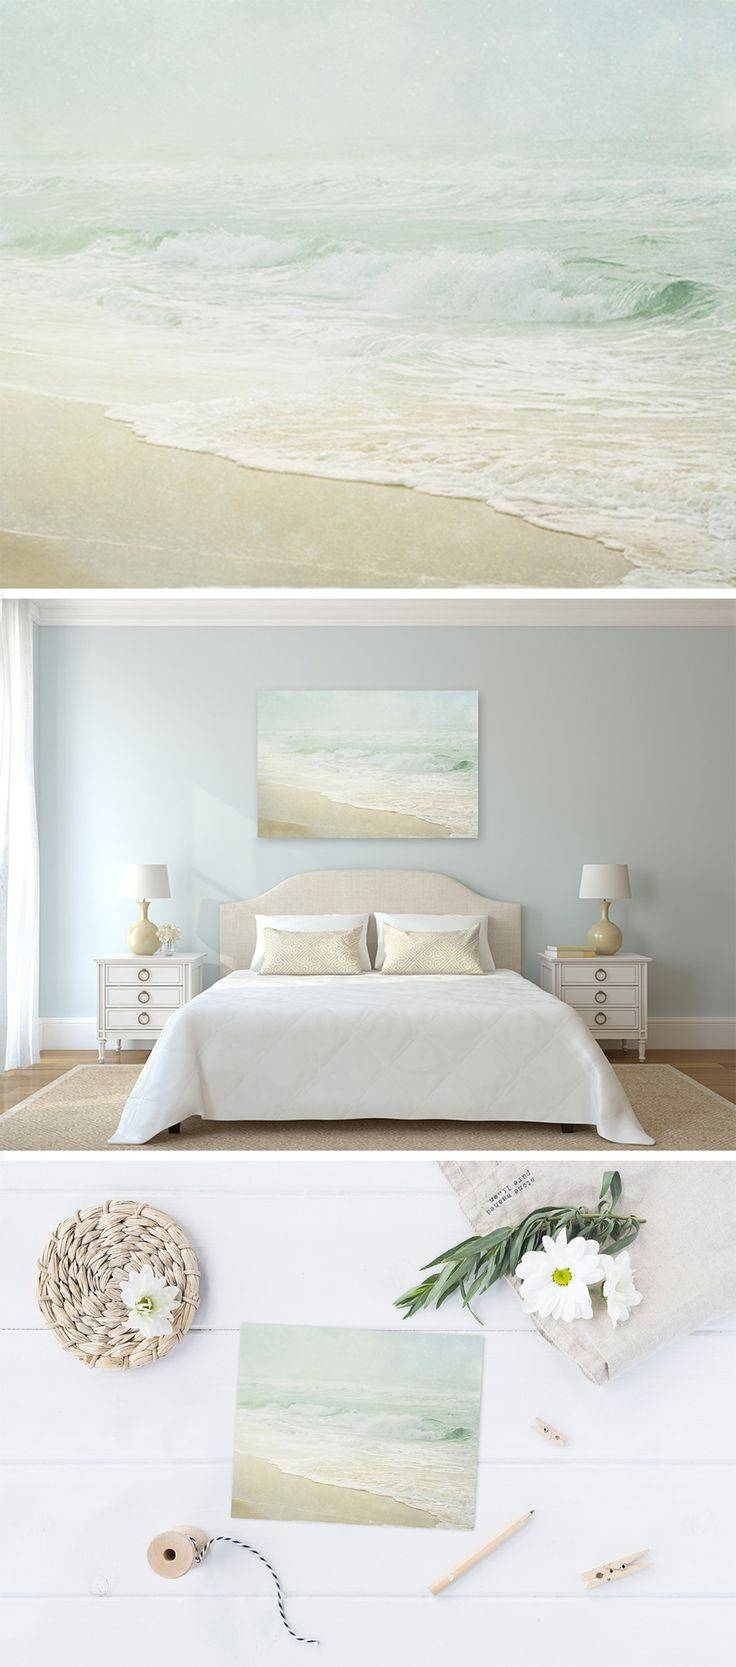 Best 25+ Coastal Wall Art Ideas On Pinterest | Coastal Inspired For Most Recent Beach Cottage Wall Art (View 2 of 25)